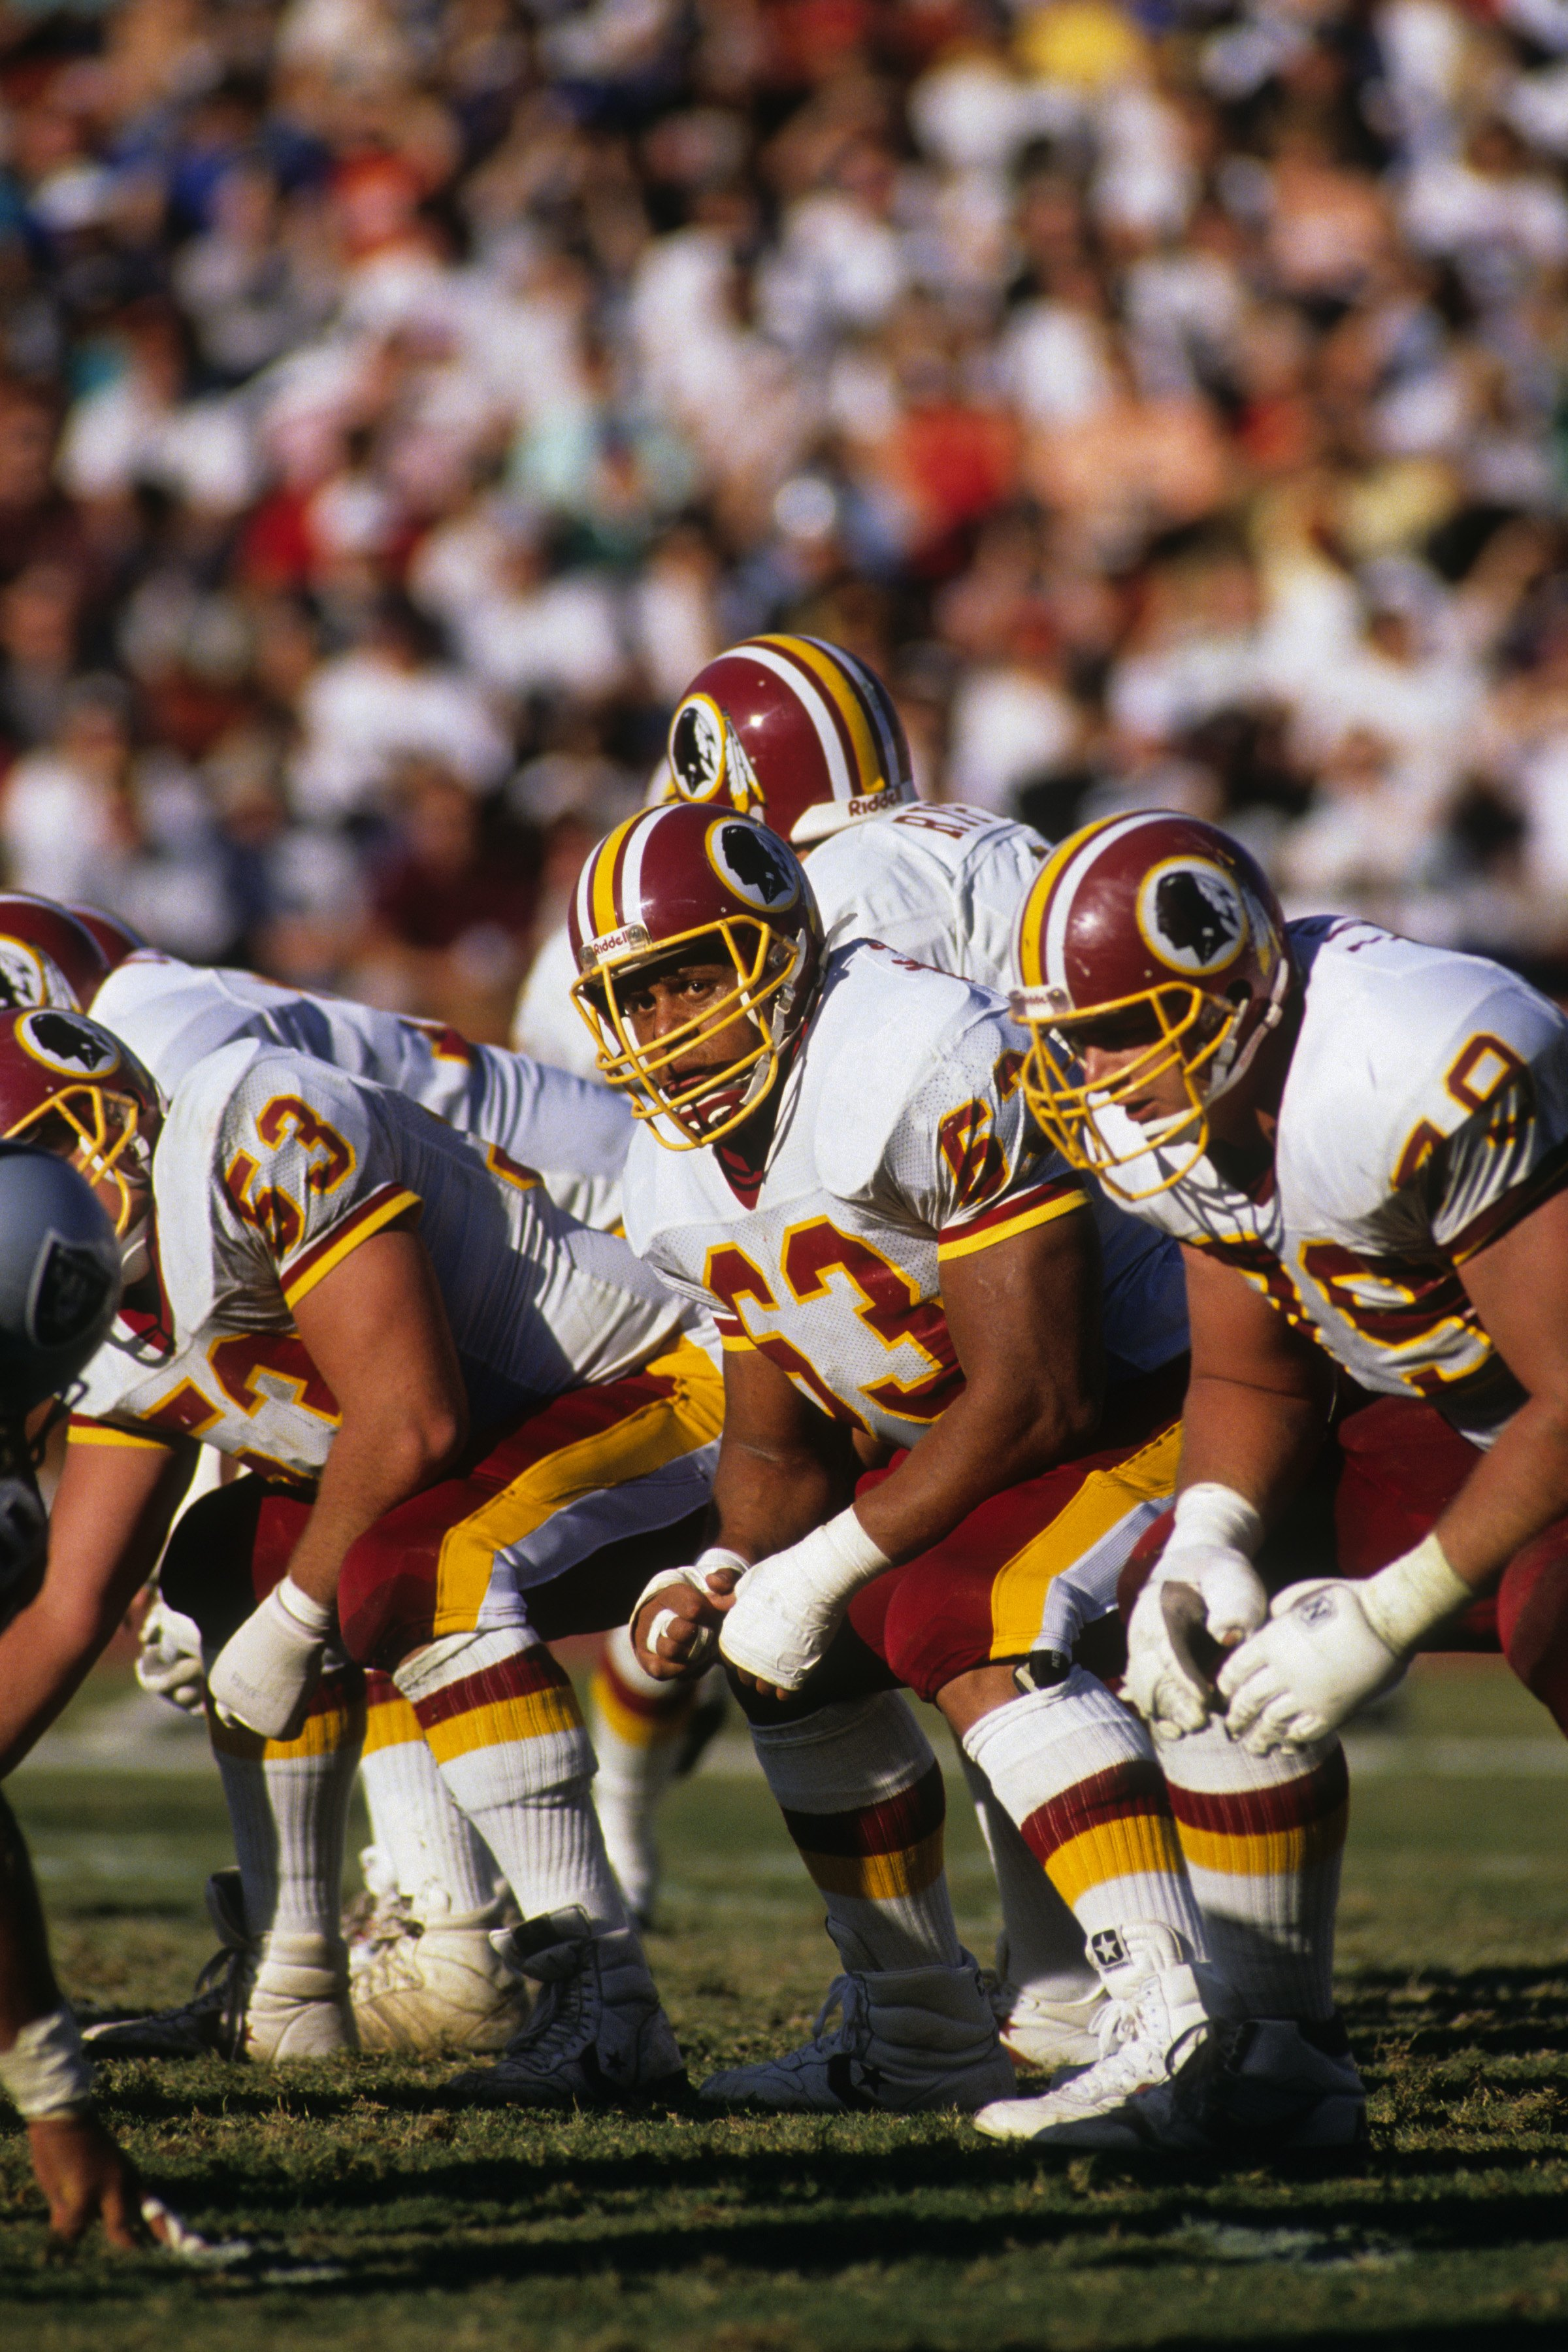 WASHINGTON - OCTOBER 29:  Tackle Raleigh McKenzie #63 of the Washington Redskins lines up on the line of scrimage during the game against the Los Angeles Raiders at RFK Stadium on October 29, 1989 in Washington, D.C.  The Raiders won 37-24.  (Photo by Geo